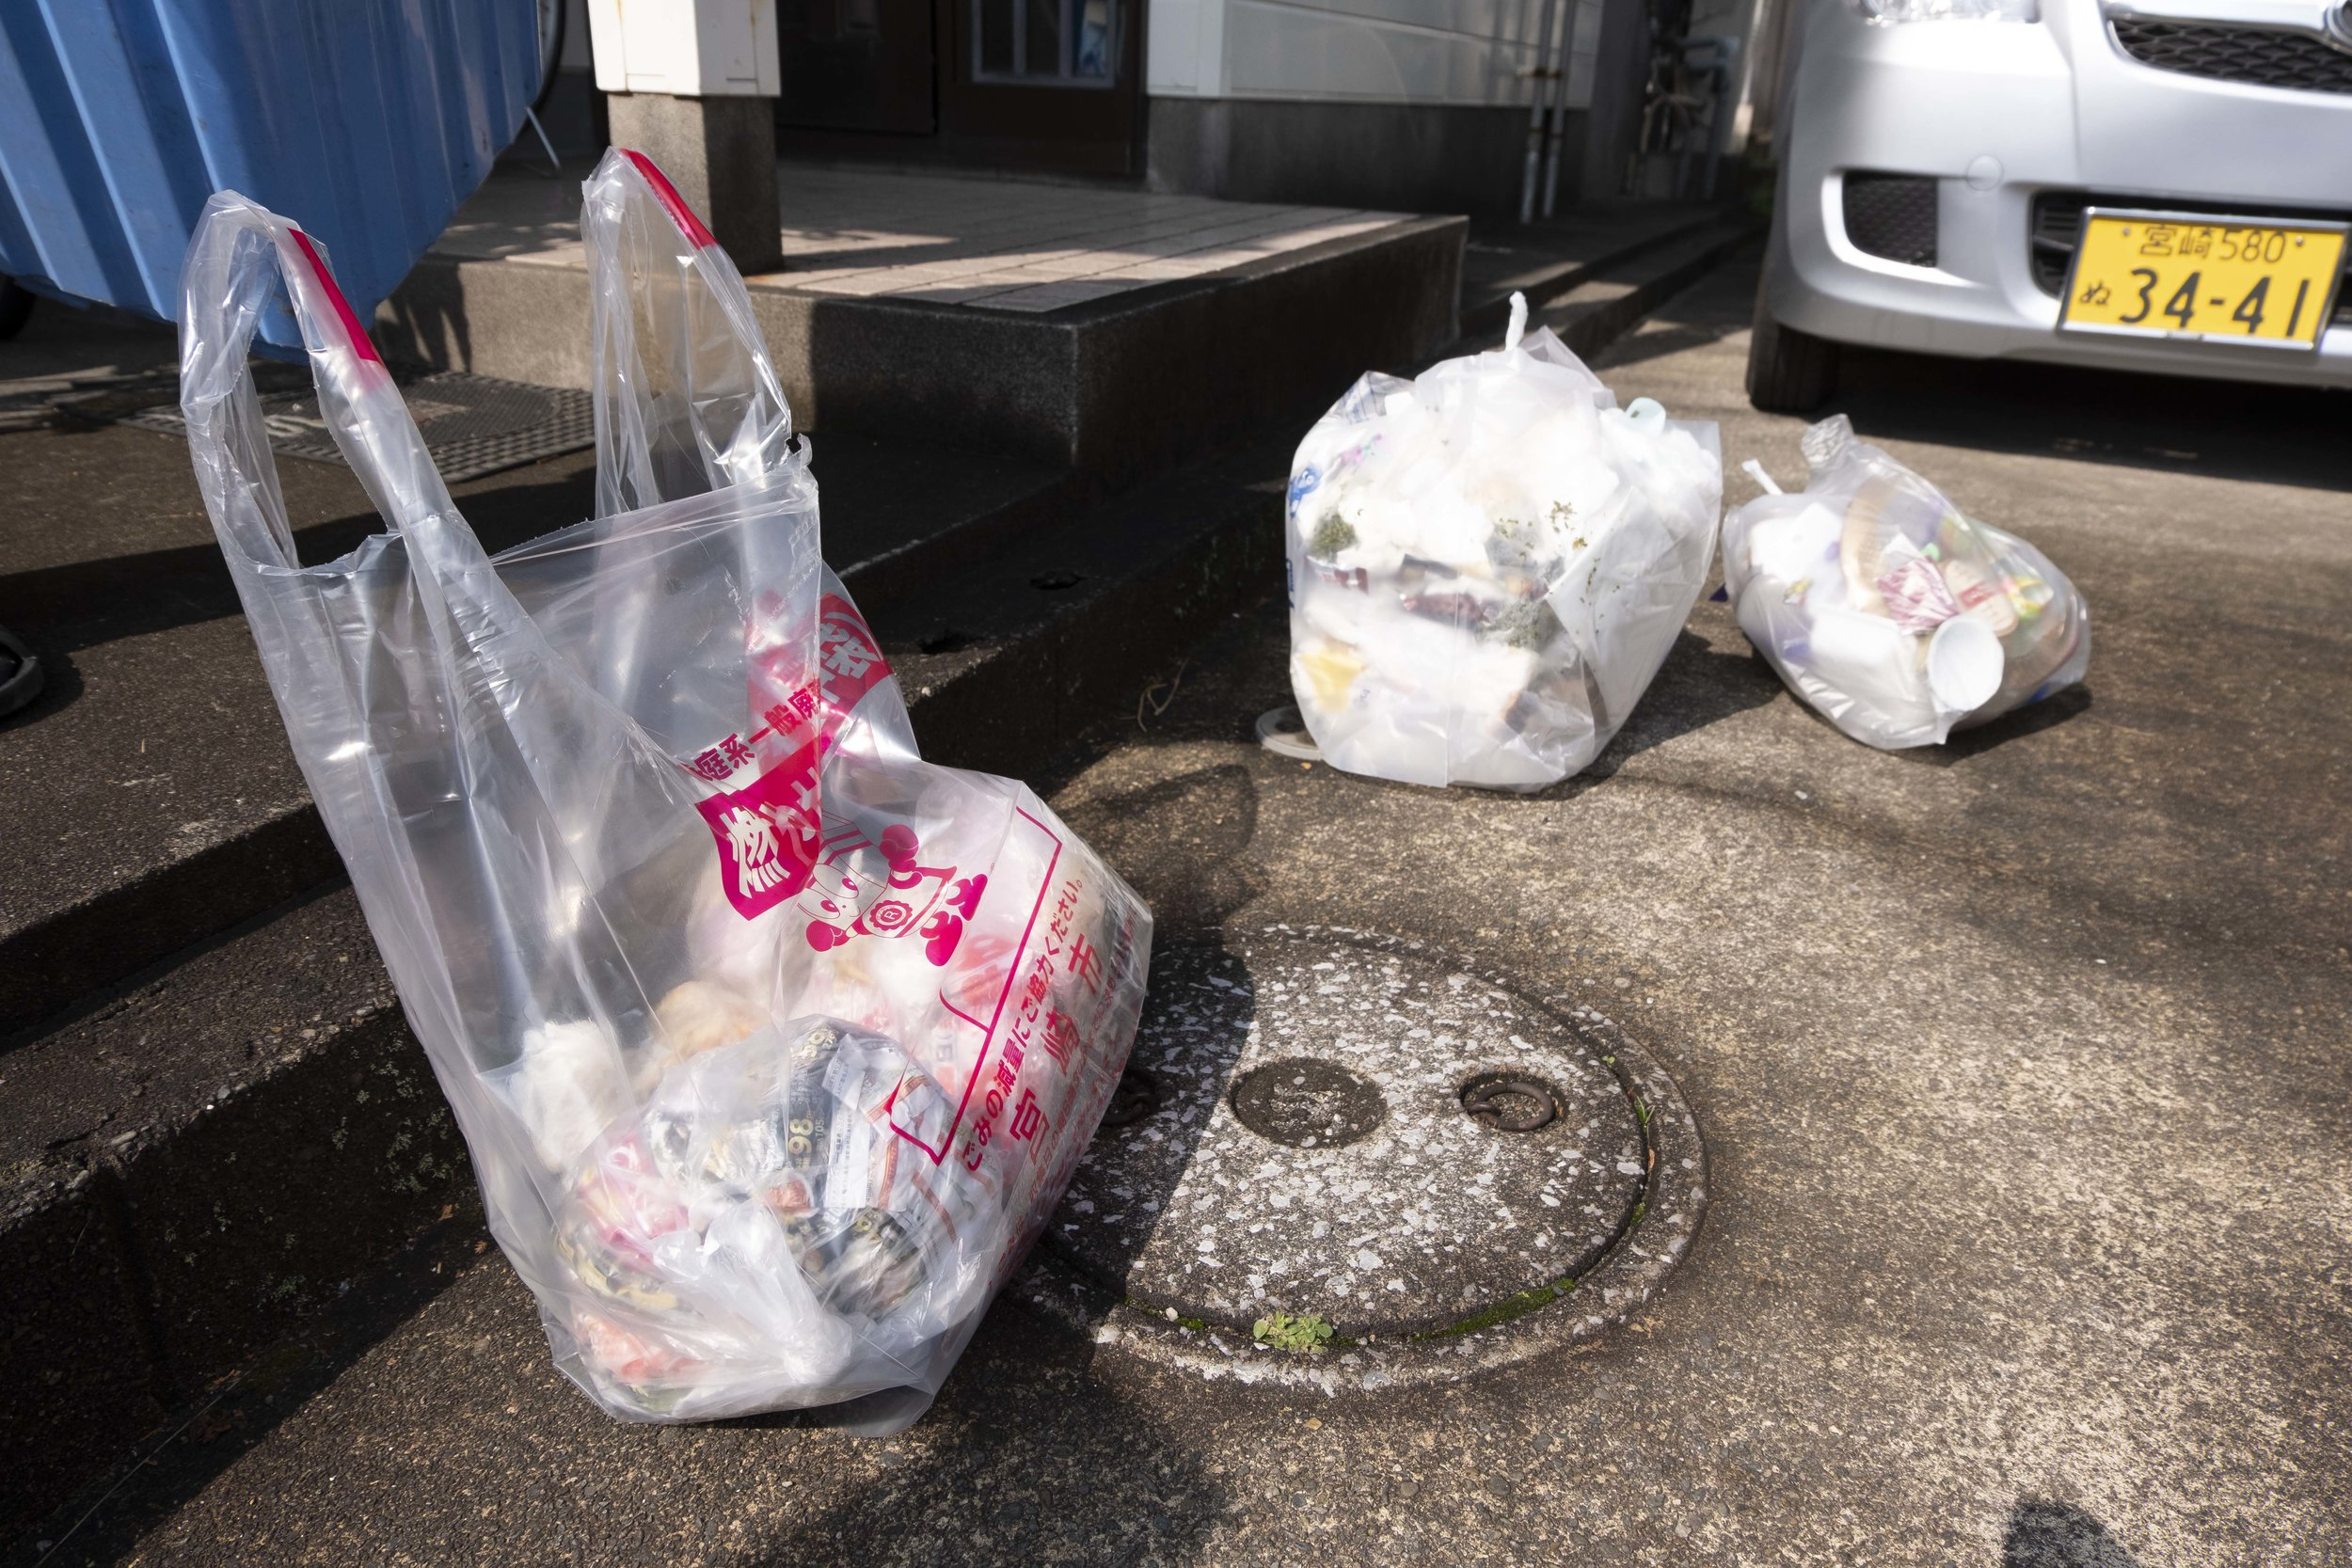 Sorting of household waste in Miyazaki, Kyushu, Japan (2017). Household waste is sorted in bags and then placed on a neighborhood corner multiple times a week.